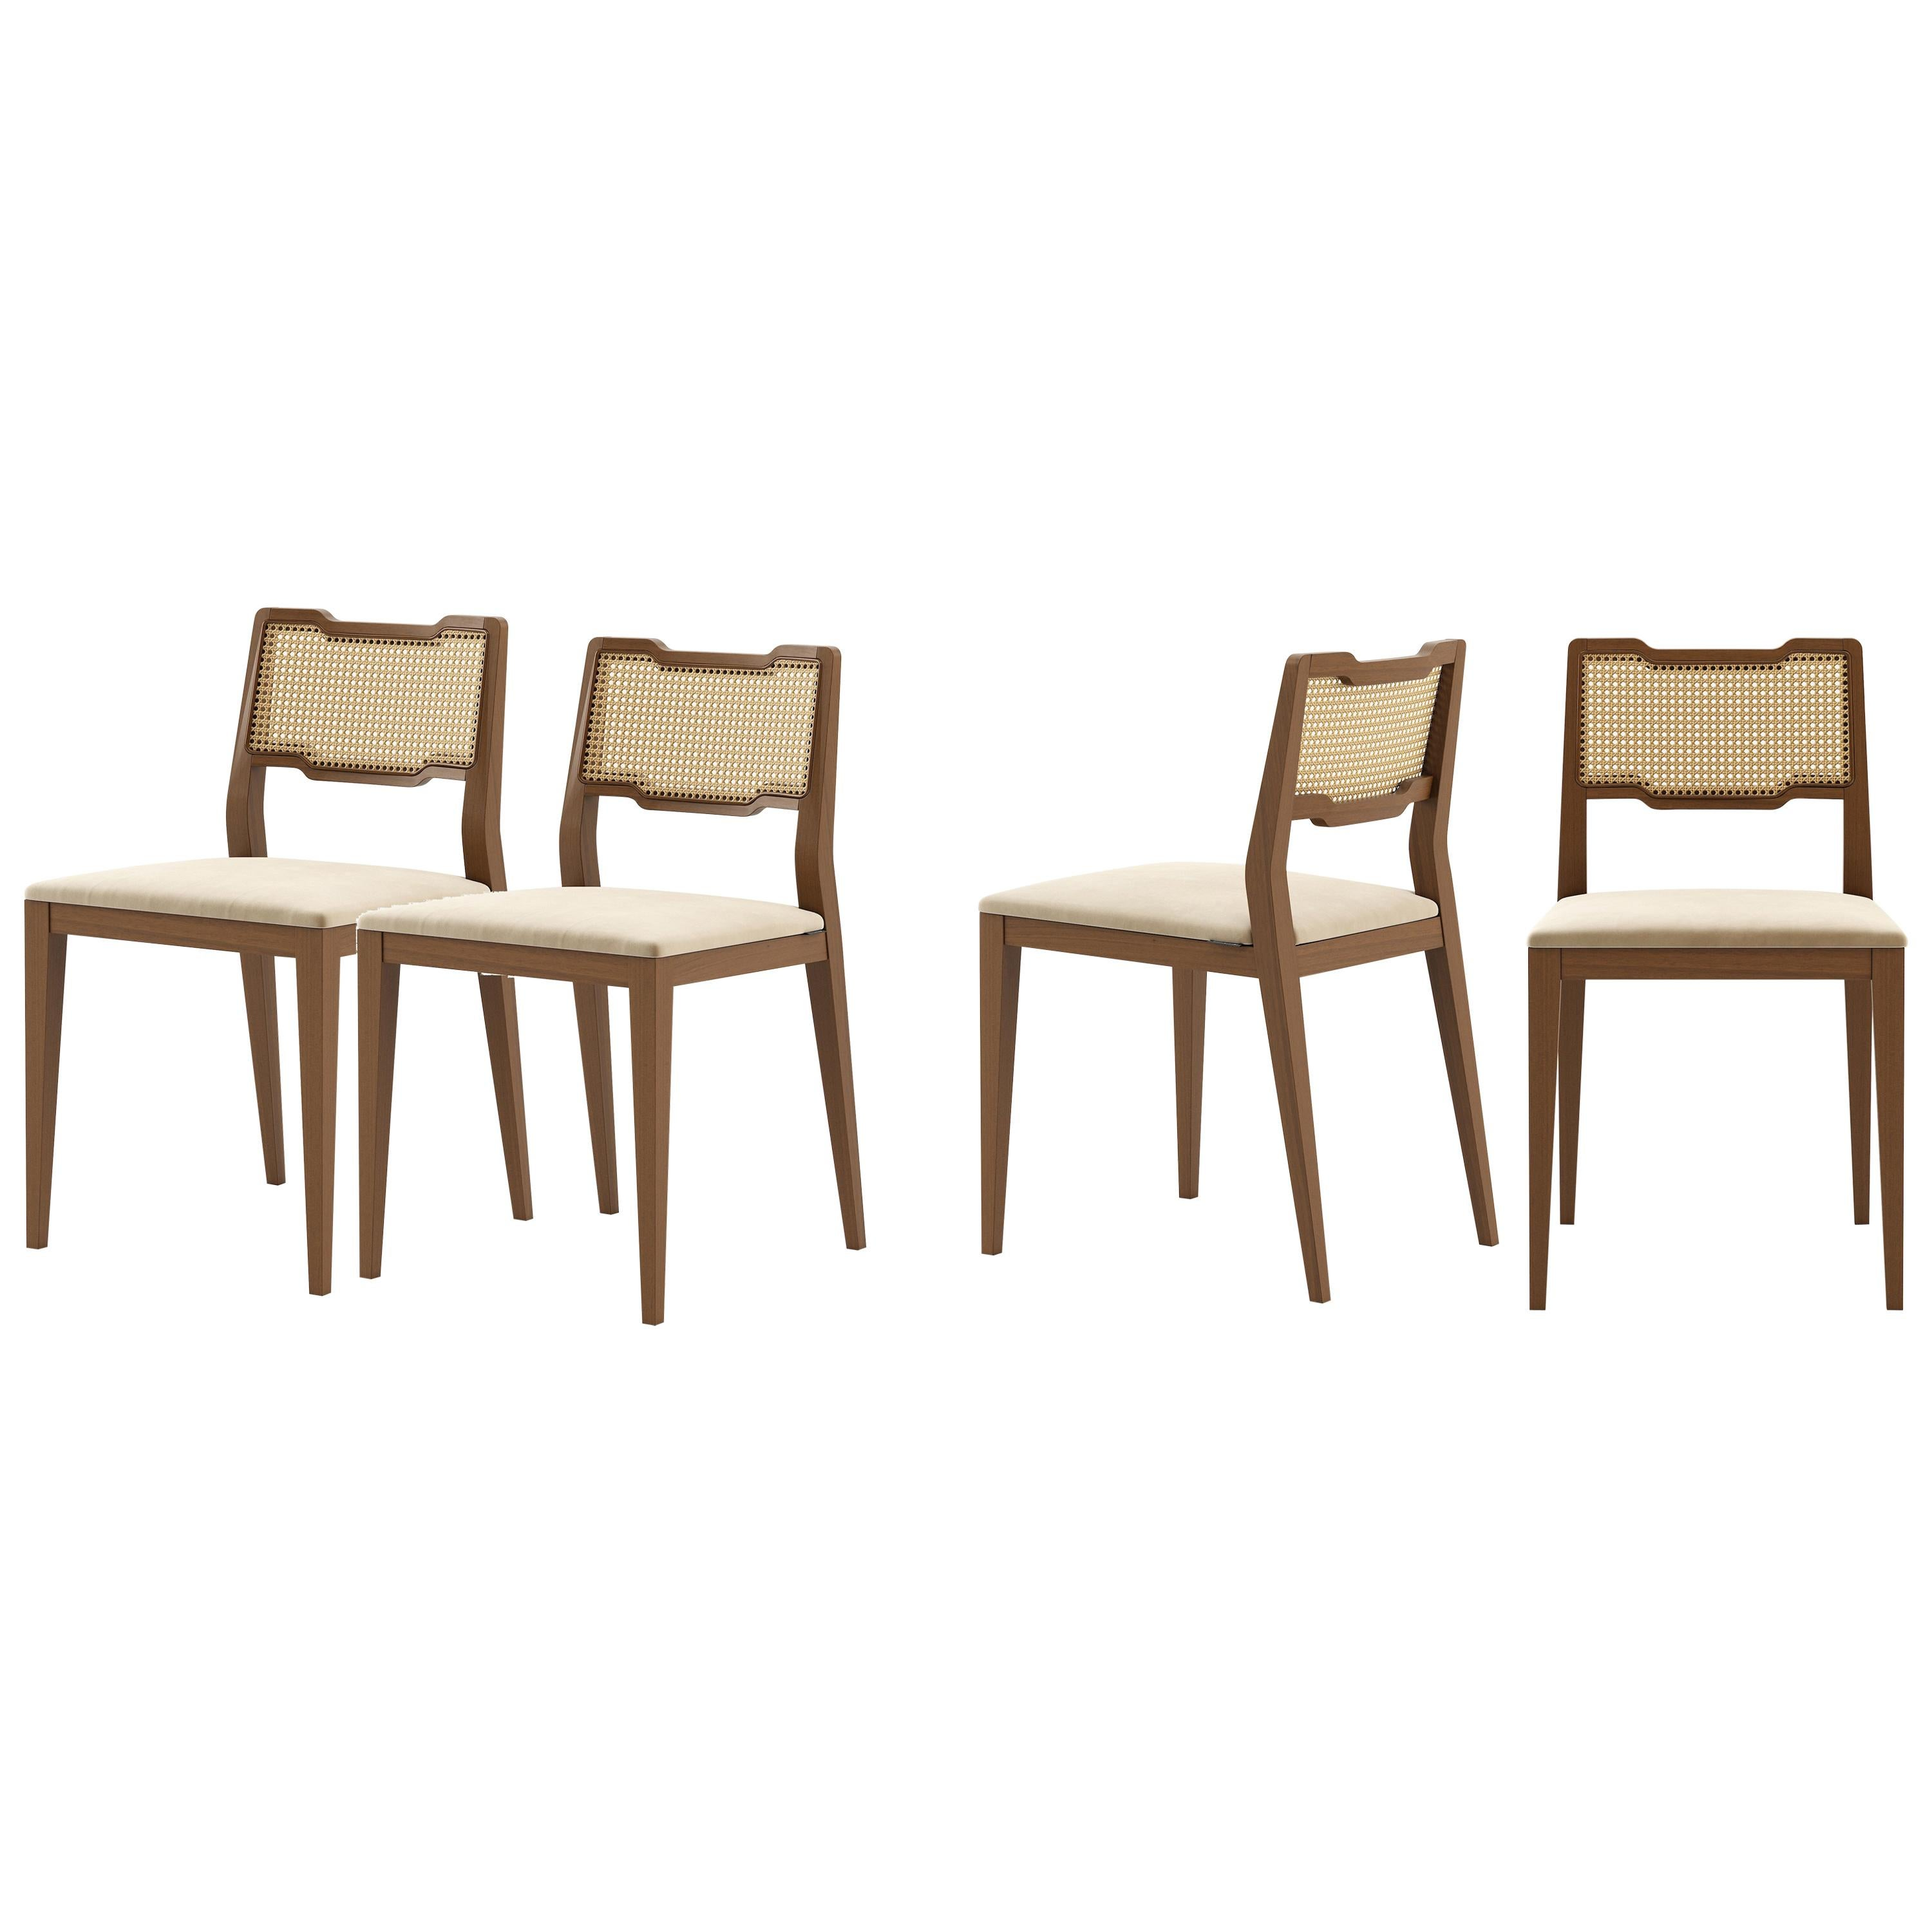 Handcrafted Rattan Dining Chairs in Walnut Finish